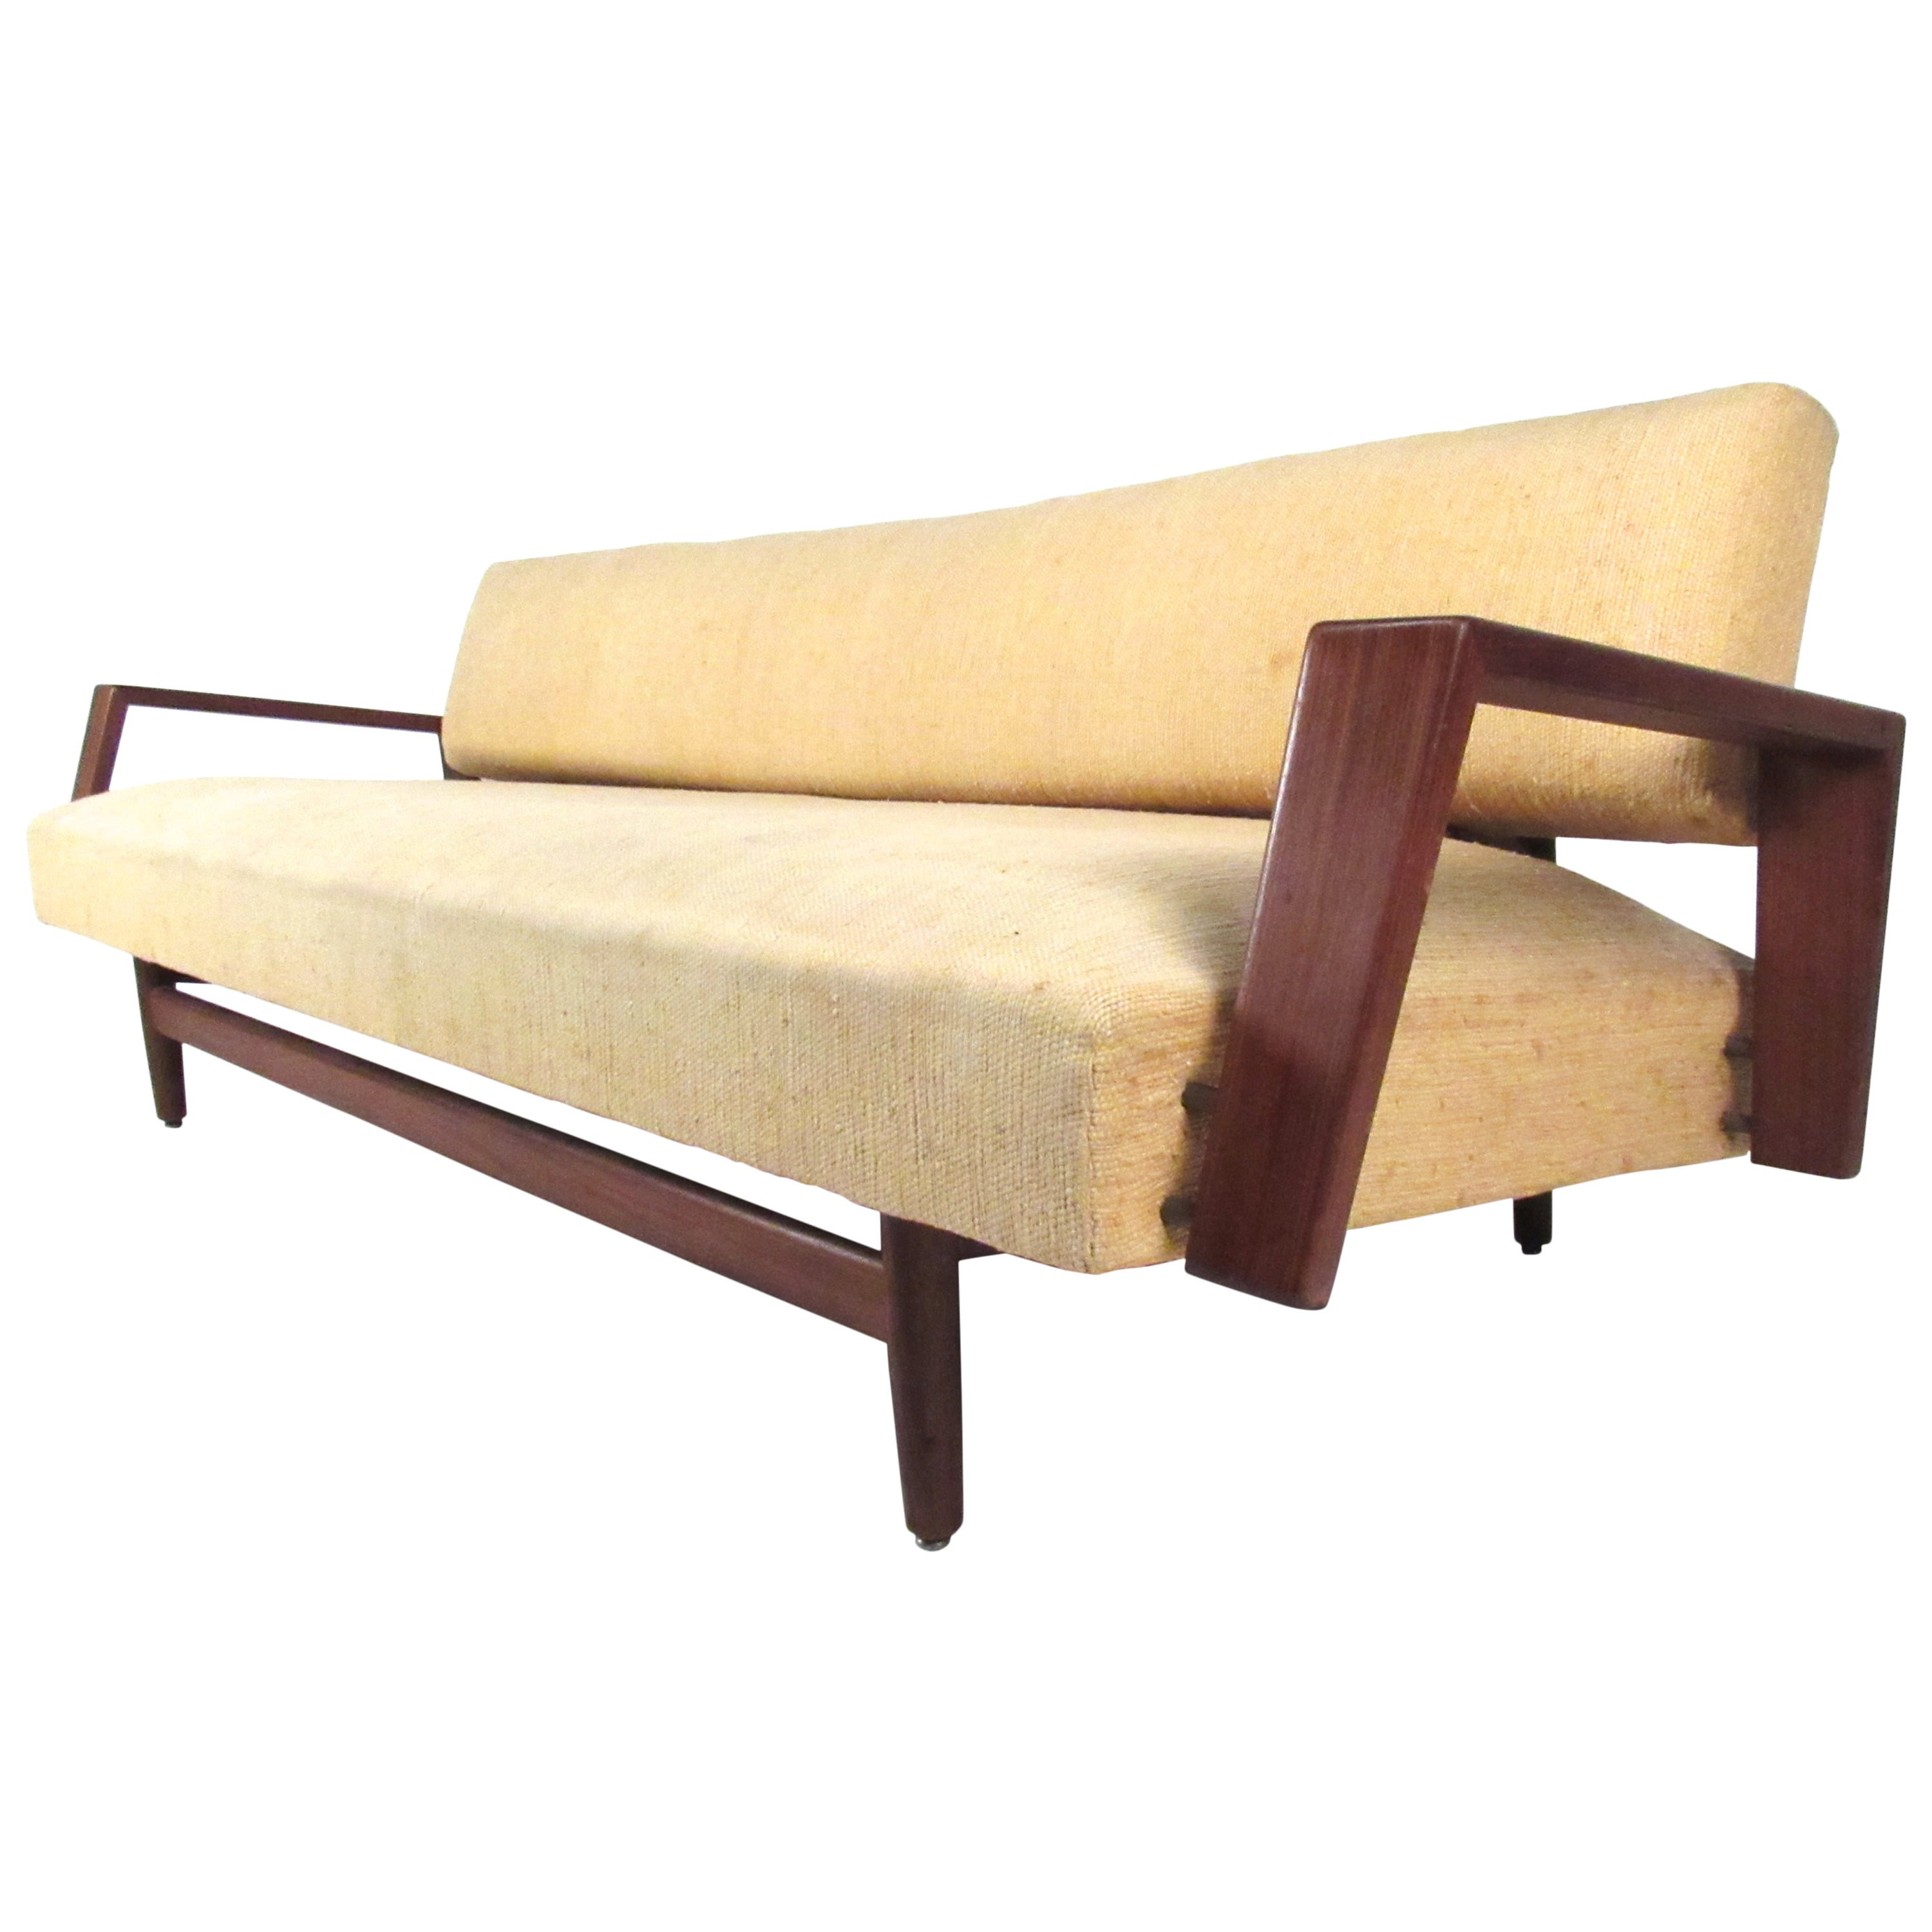 Vintage Sofa or Daybed in the Style of Arne Wahl